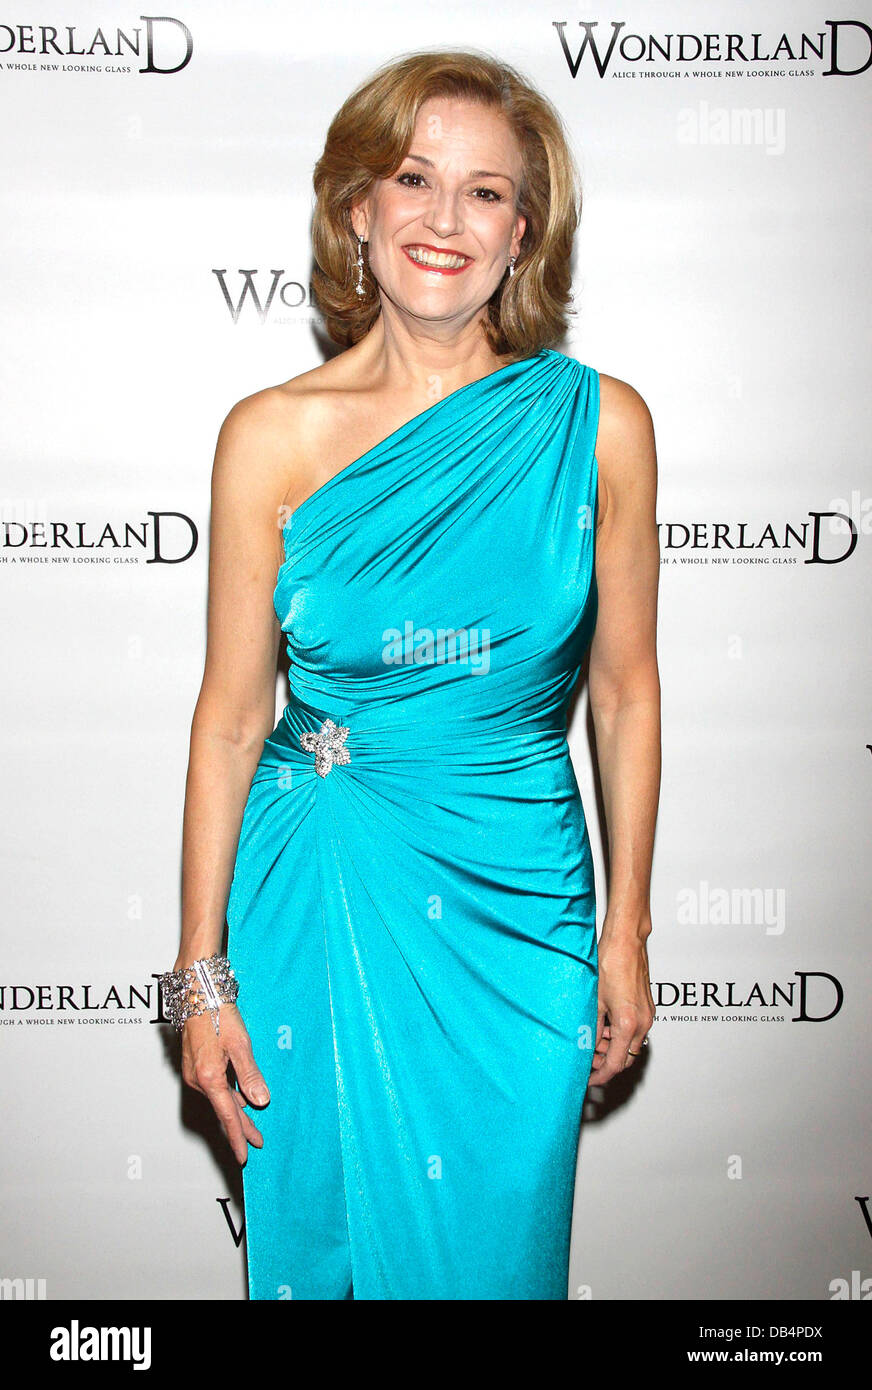 639ab289b4 Karen Mason Opening night after party for the Broadway musical production  of  Wonderland  held at the Marriott Hotel New York City